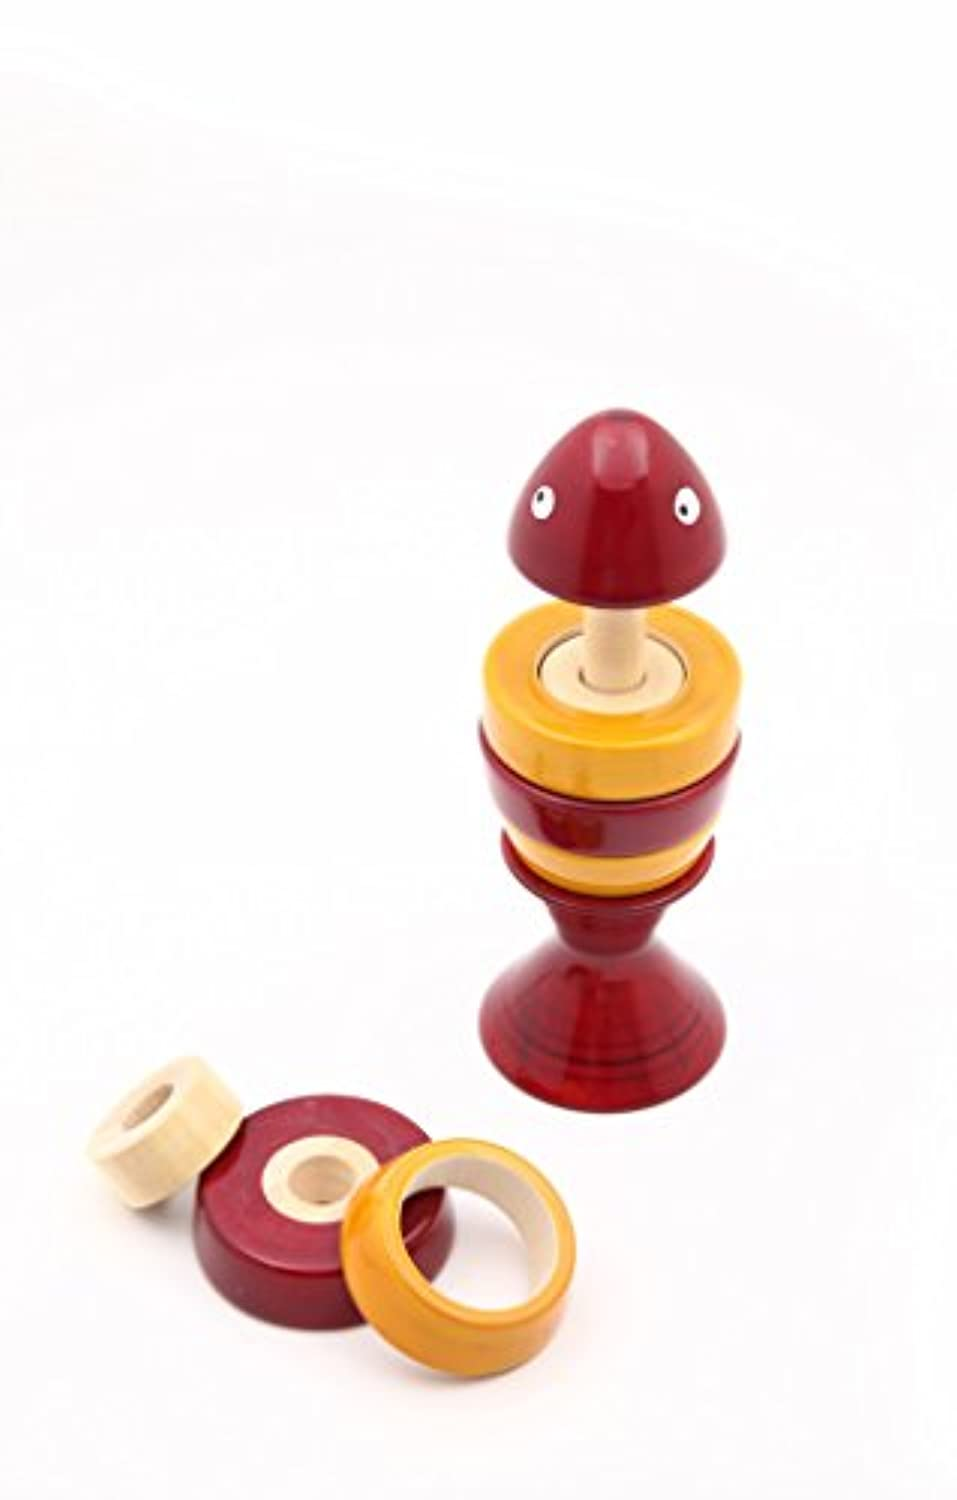 Caravan Red Fish inビット:楽しい手作りMix and Match Shape Sorting魚形状パズルin Natural Wood for Kids